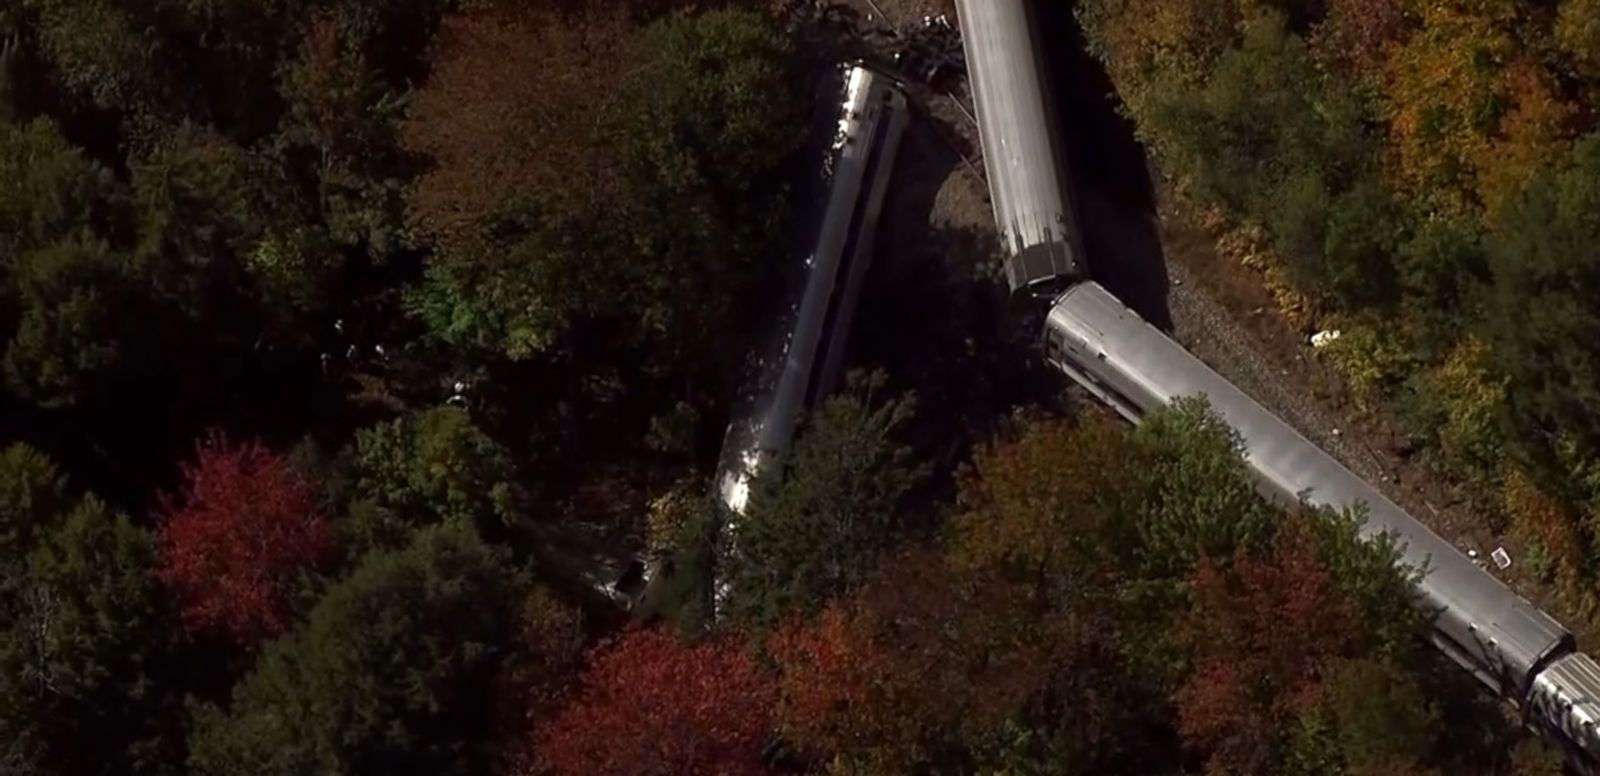 VIDEO: Gov. Peter Shumlin describes the passengers' climb to safety after the train derailed over an embankment.